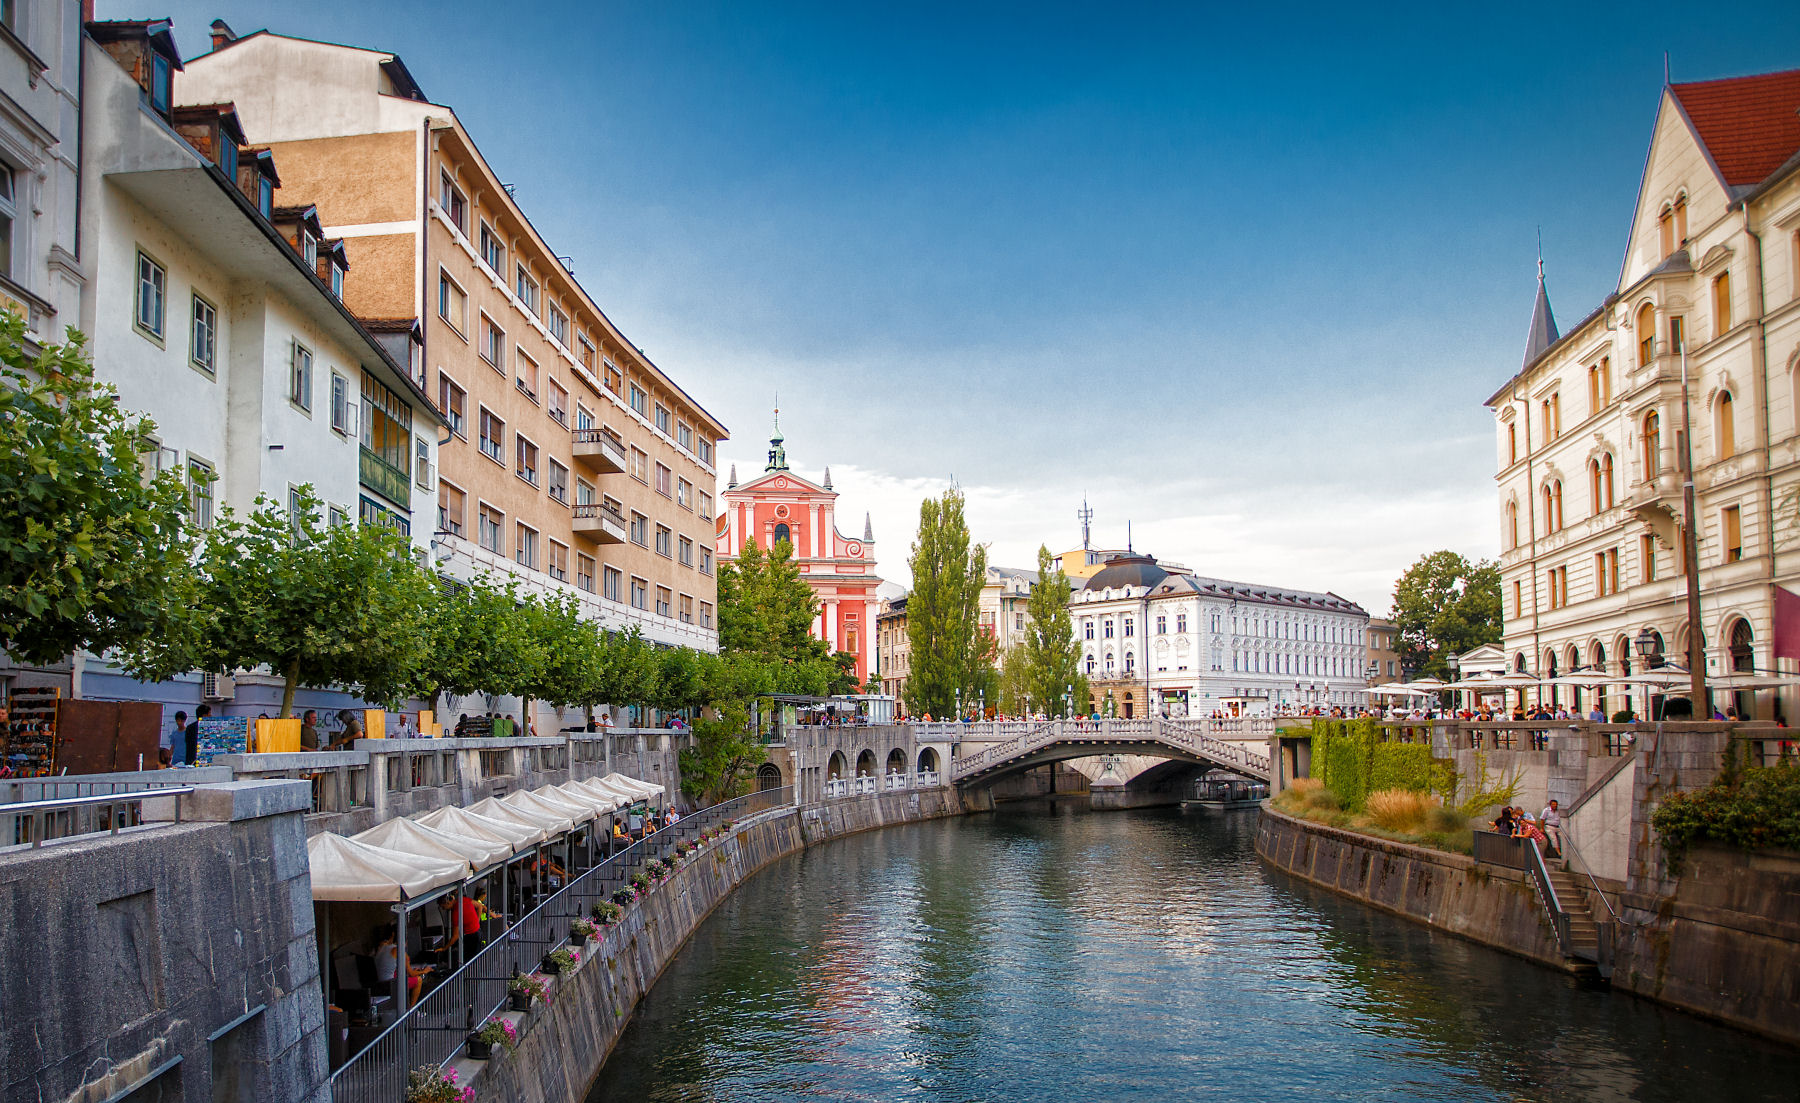 The Ljubljana river runs through the center of the old town